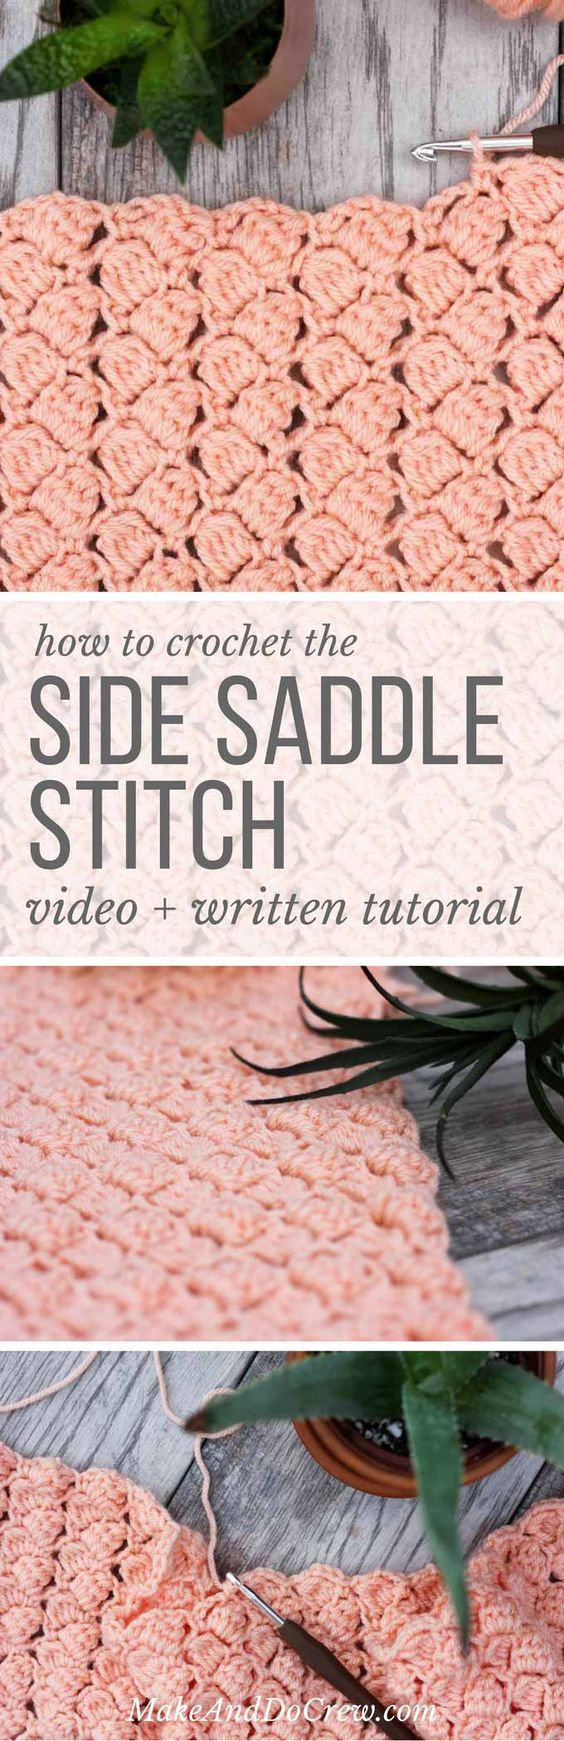 Side Saddle Crochet Stitch Tutorial - (makeanddocrew)